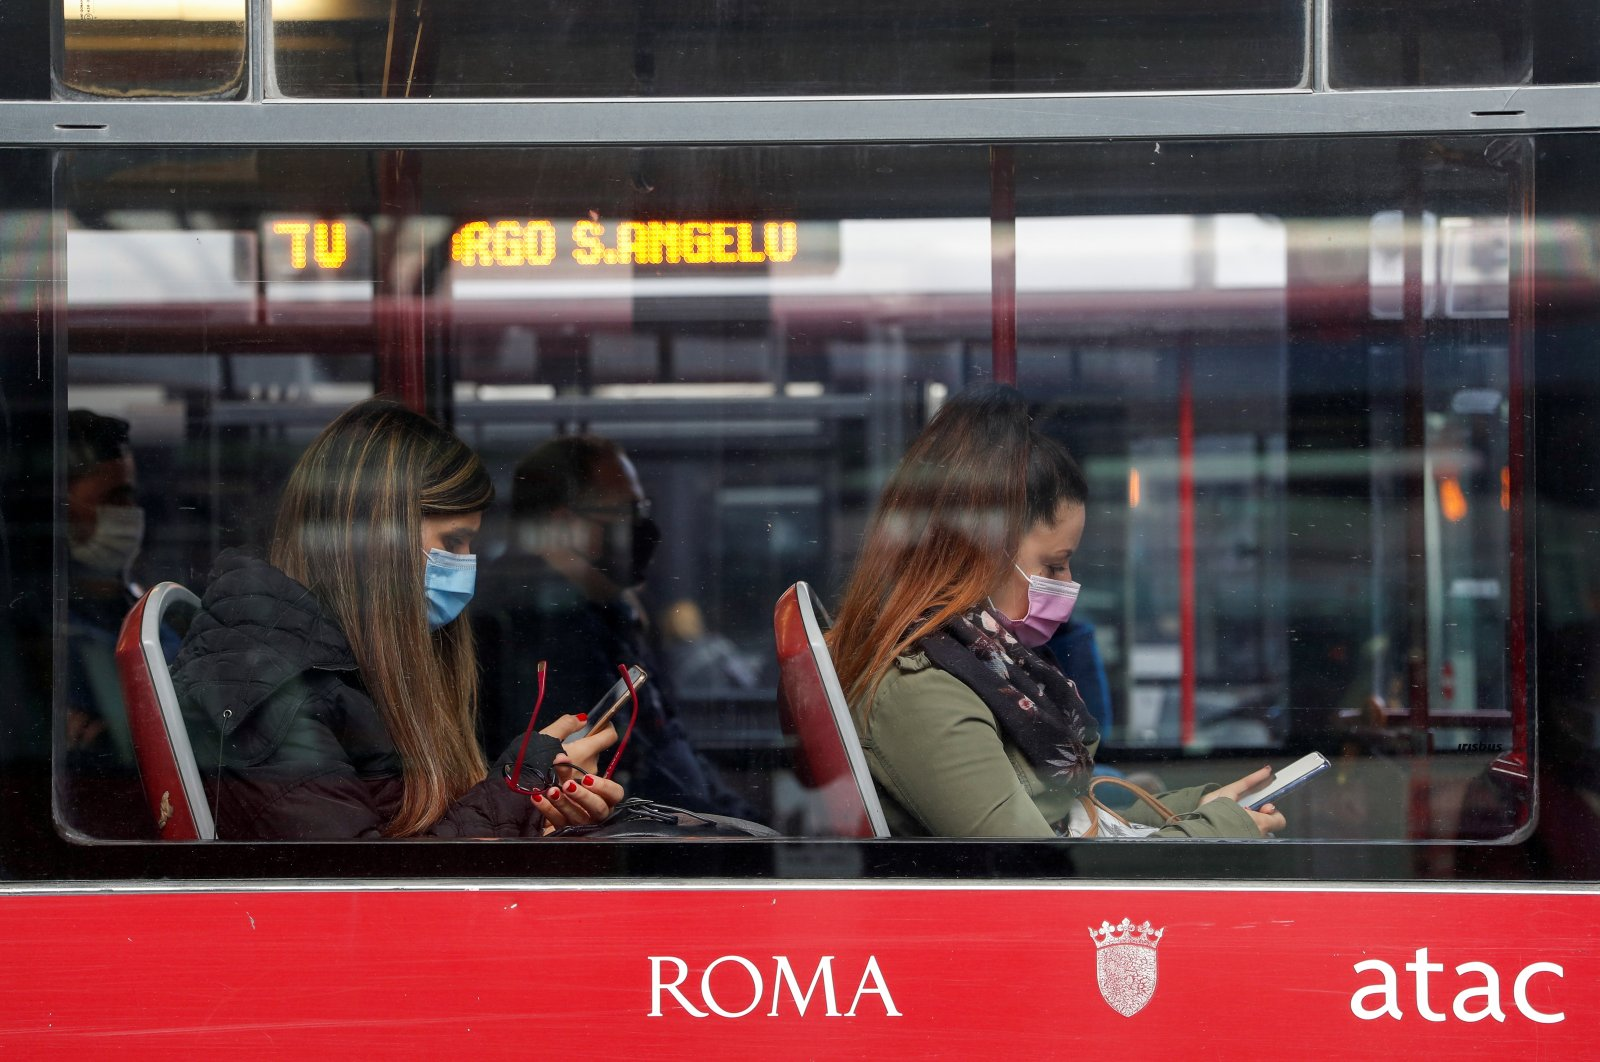 Passengers wearing protective face masks travel on a bus, Rome, Oct. 15, 2020. (Reuters Photo)